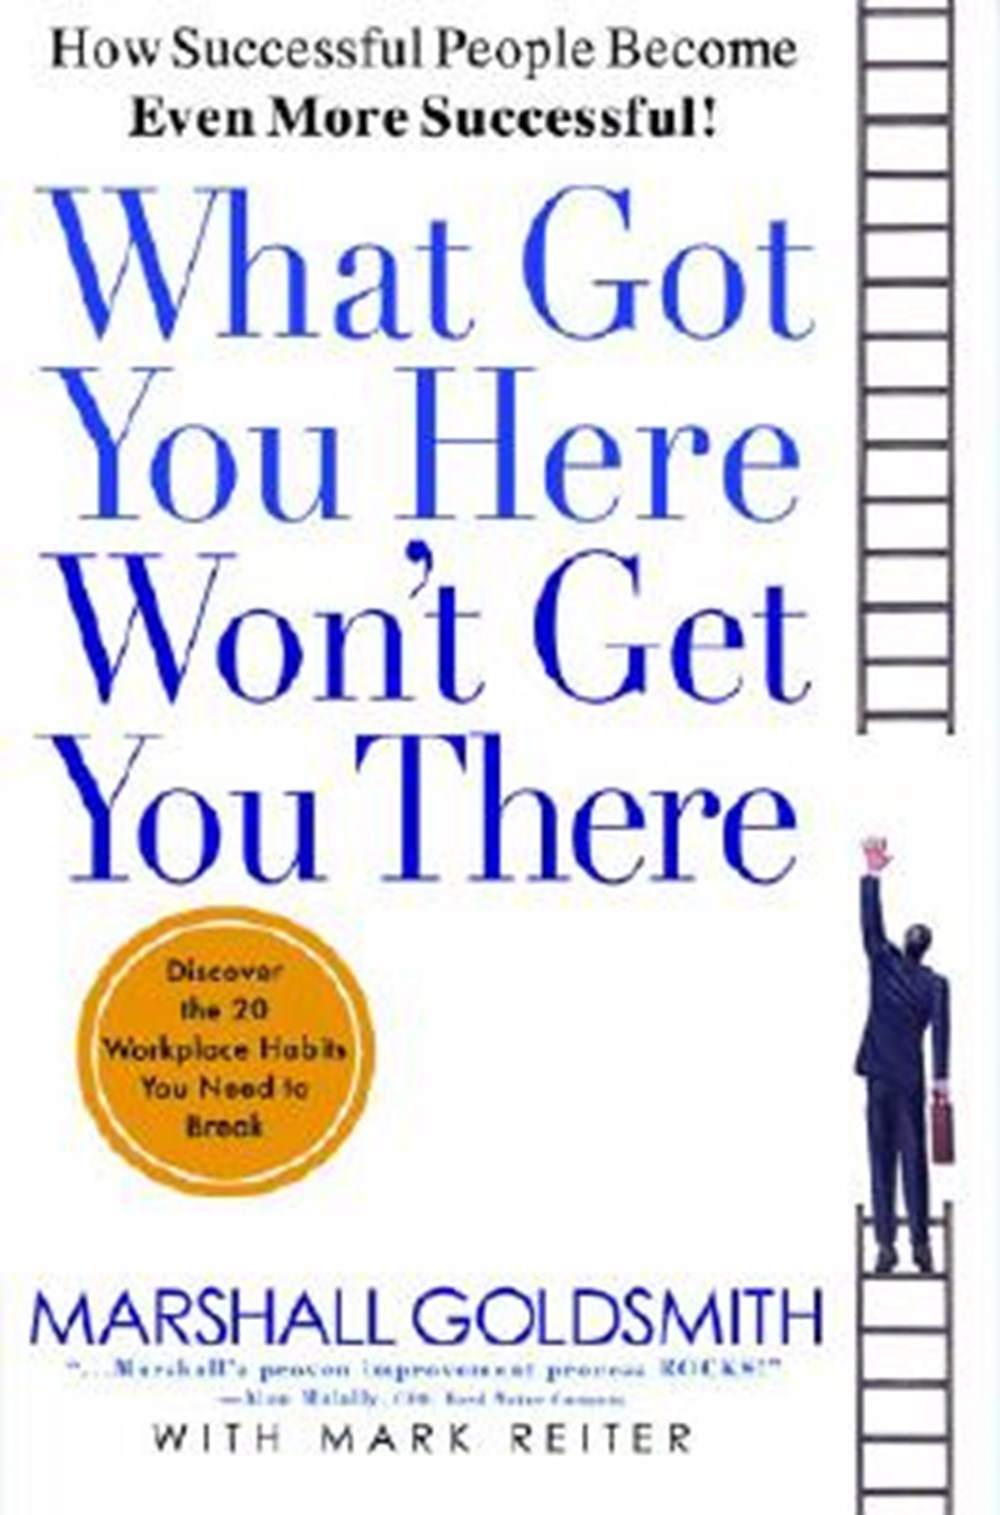 What Got You Here Won't Get You There How Successful People Become Even More Successful (Revised)